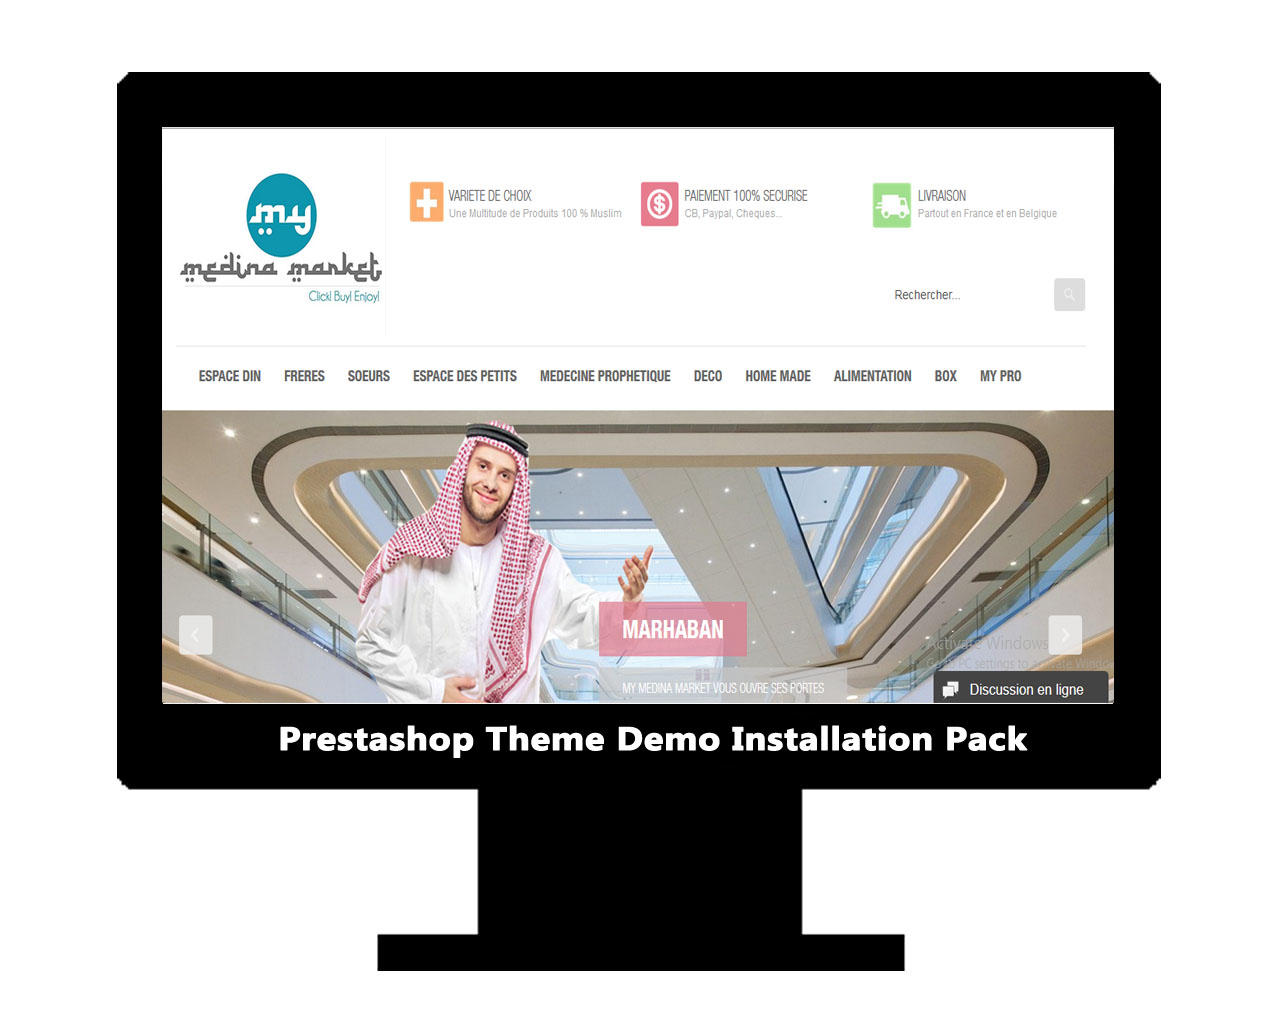 Prestashop Theme Installation & Demo Setup by AritonangWofa - 80545